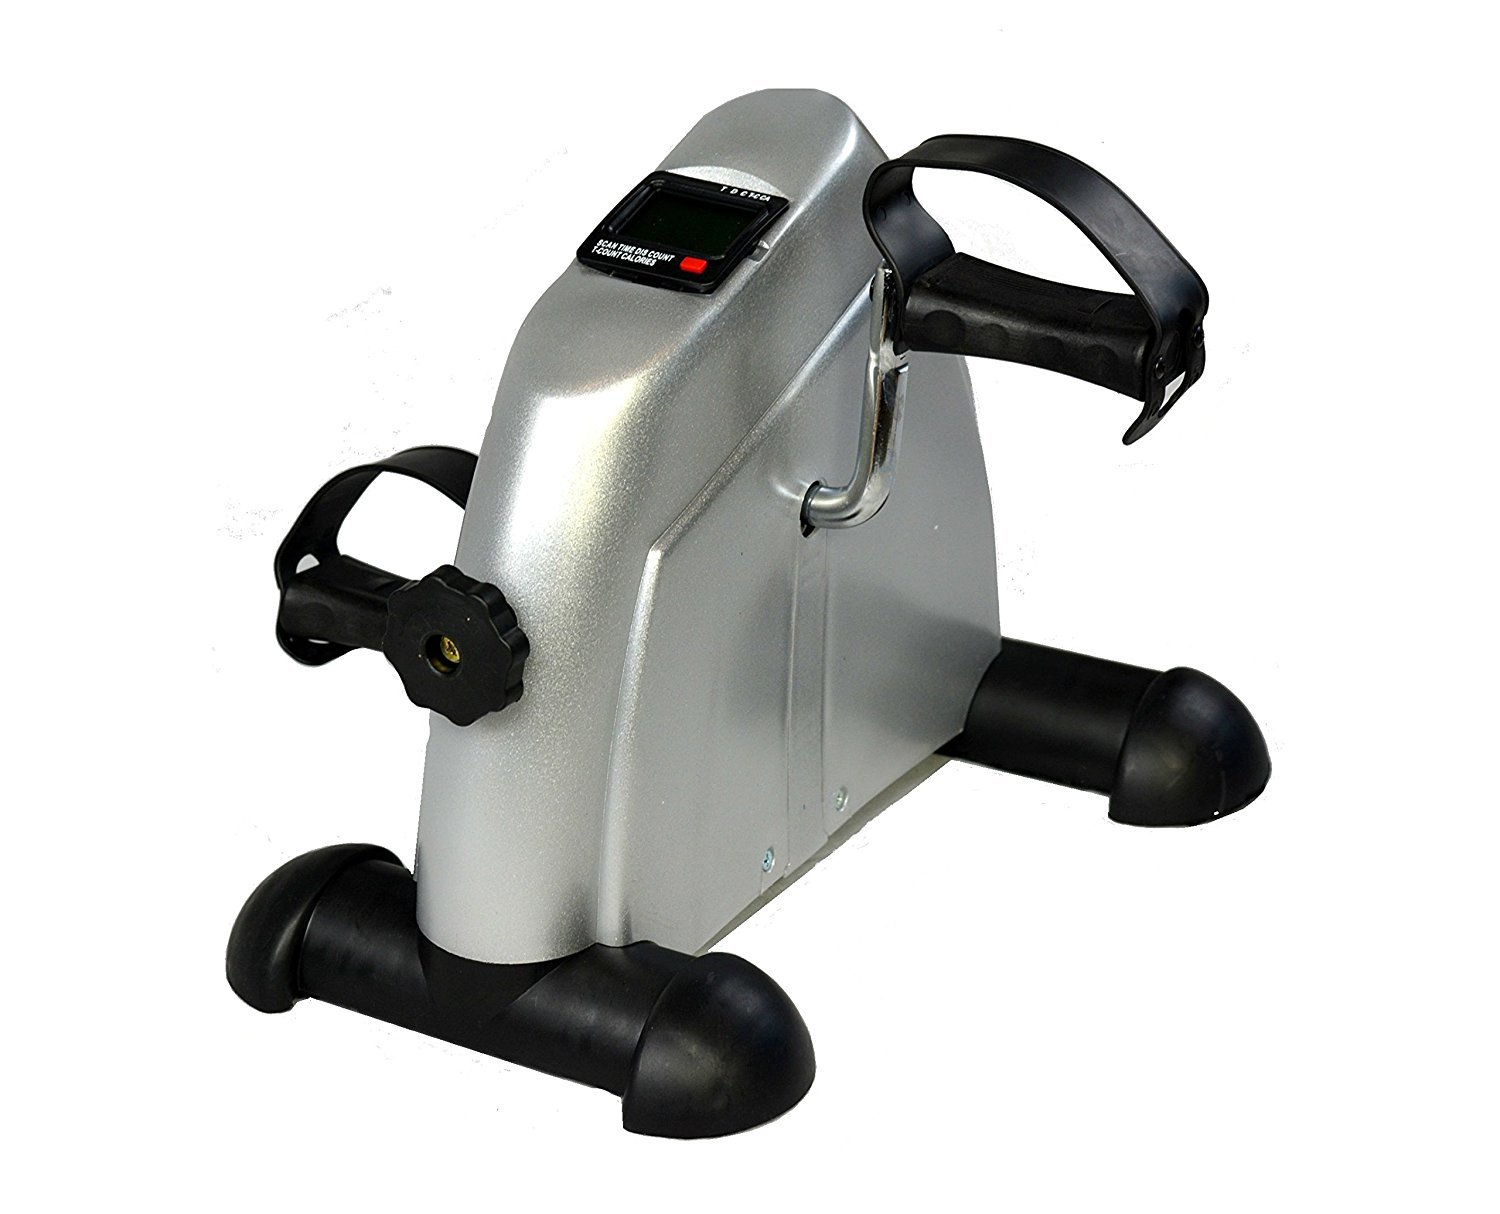 I Fitness Cardio Mini Cycle Arm Leg Exercise Pedal Bike Grey with LCD Counter